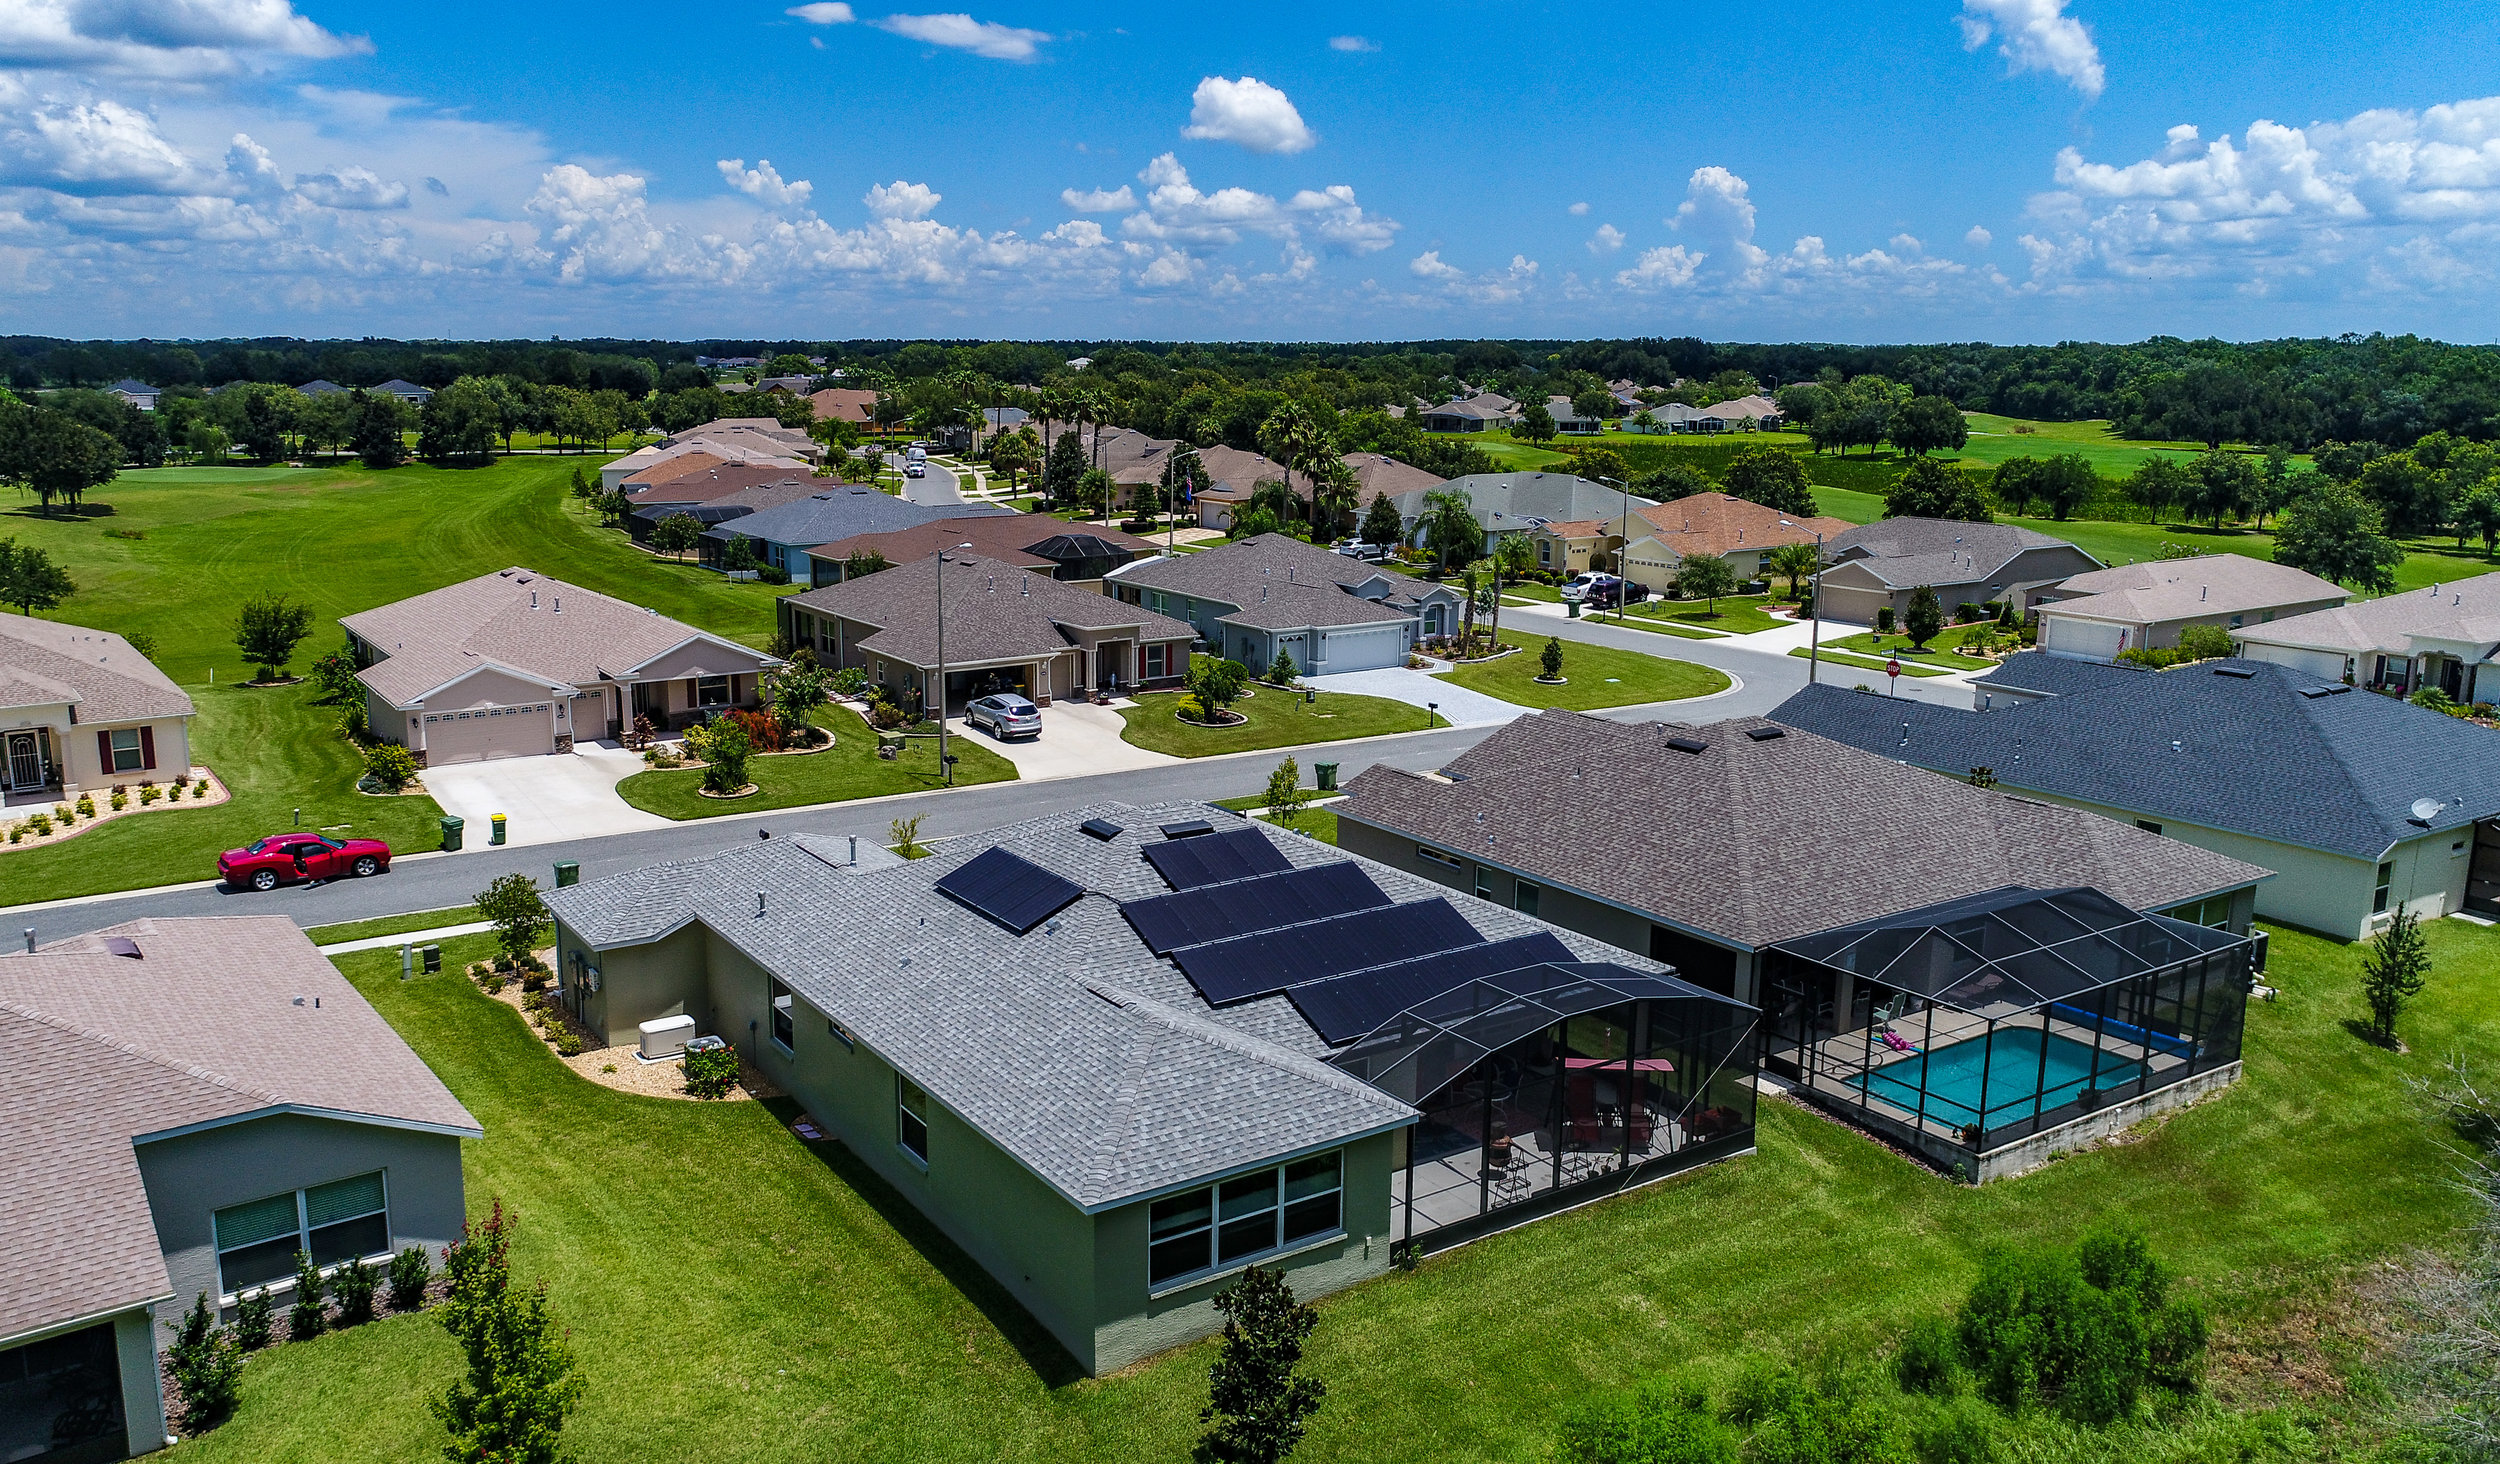 Aerial view of the Arlington Ridge property with new solar panels.